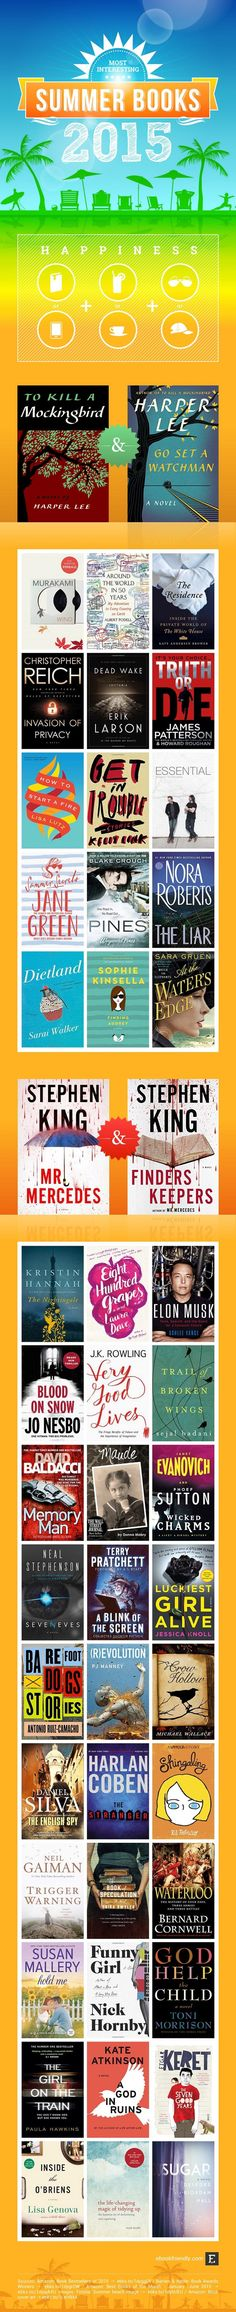 Best summer reads 2015: Harper Lee, Stephen King, and over 40 other authors